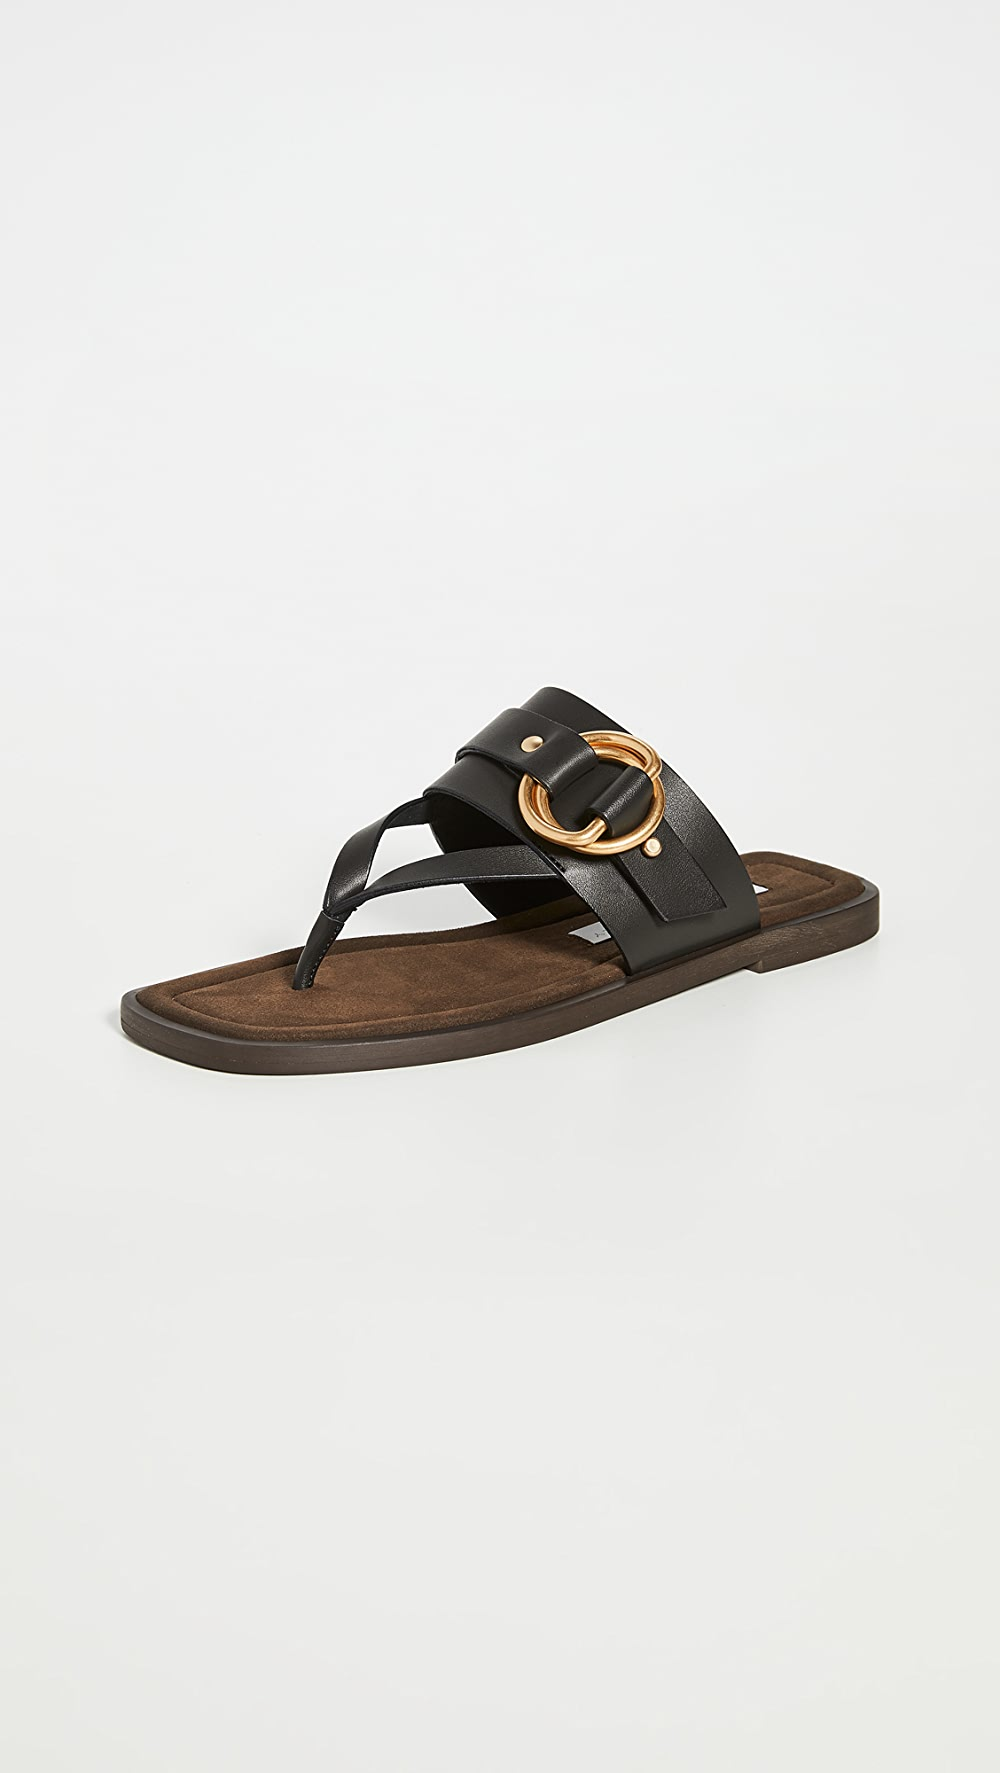 Charitable Stella Mccartney - Thong Sandals Supplement The Vital Energy And Nourish Yin